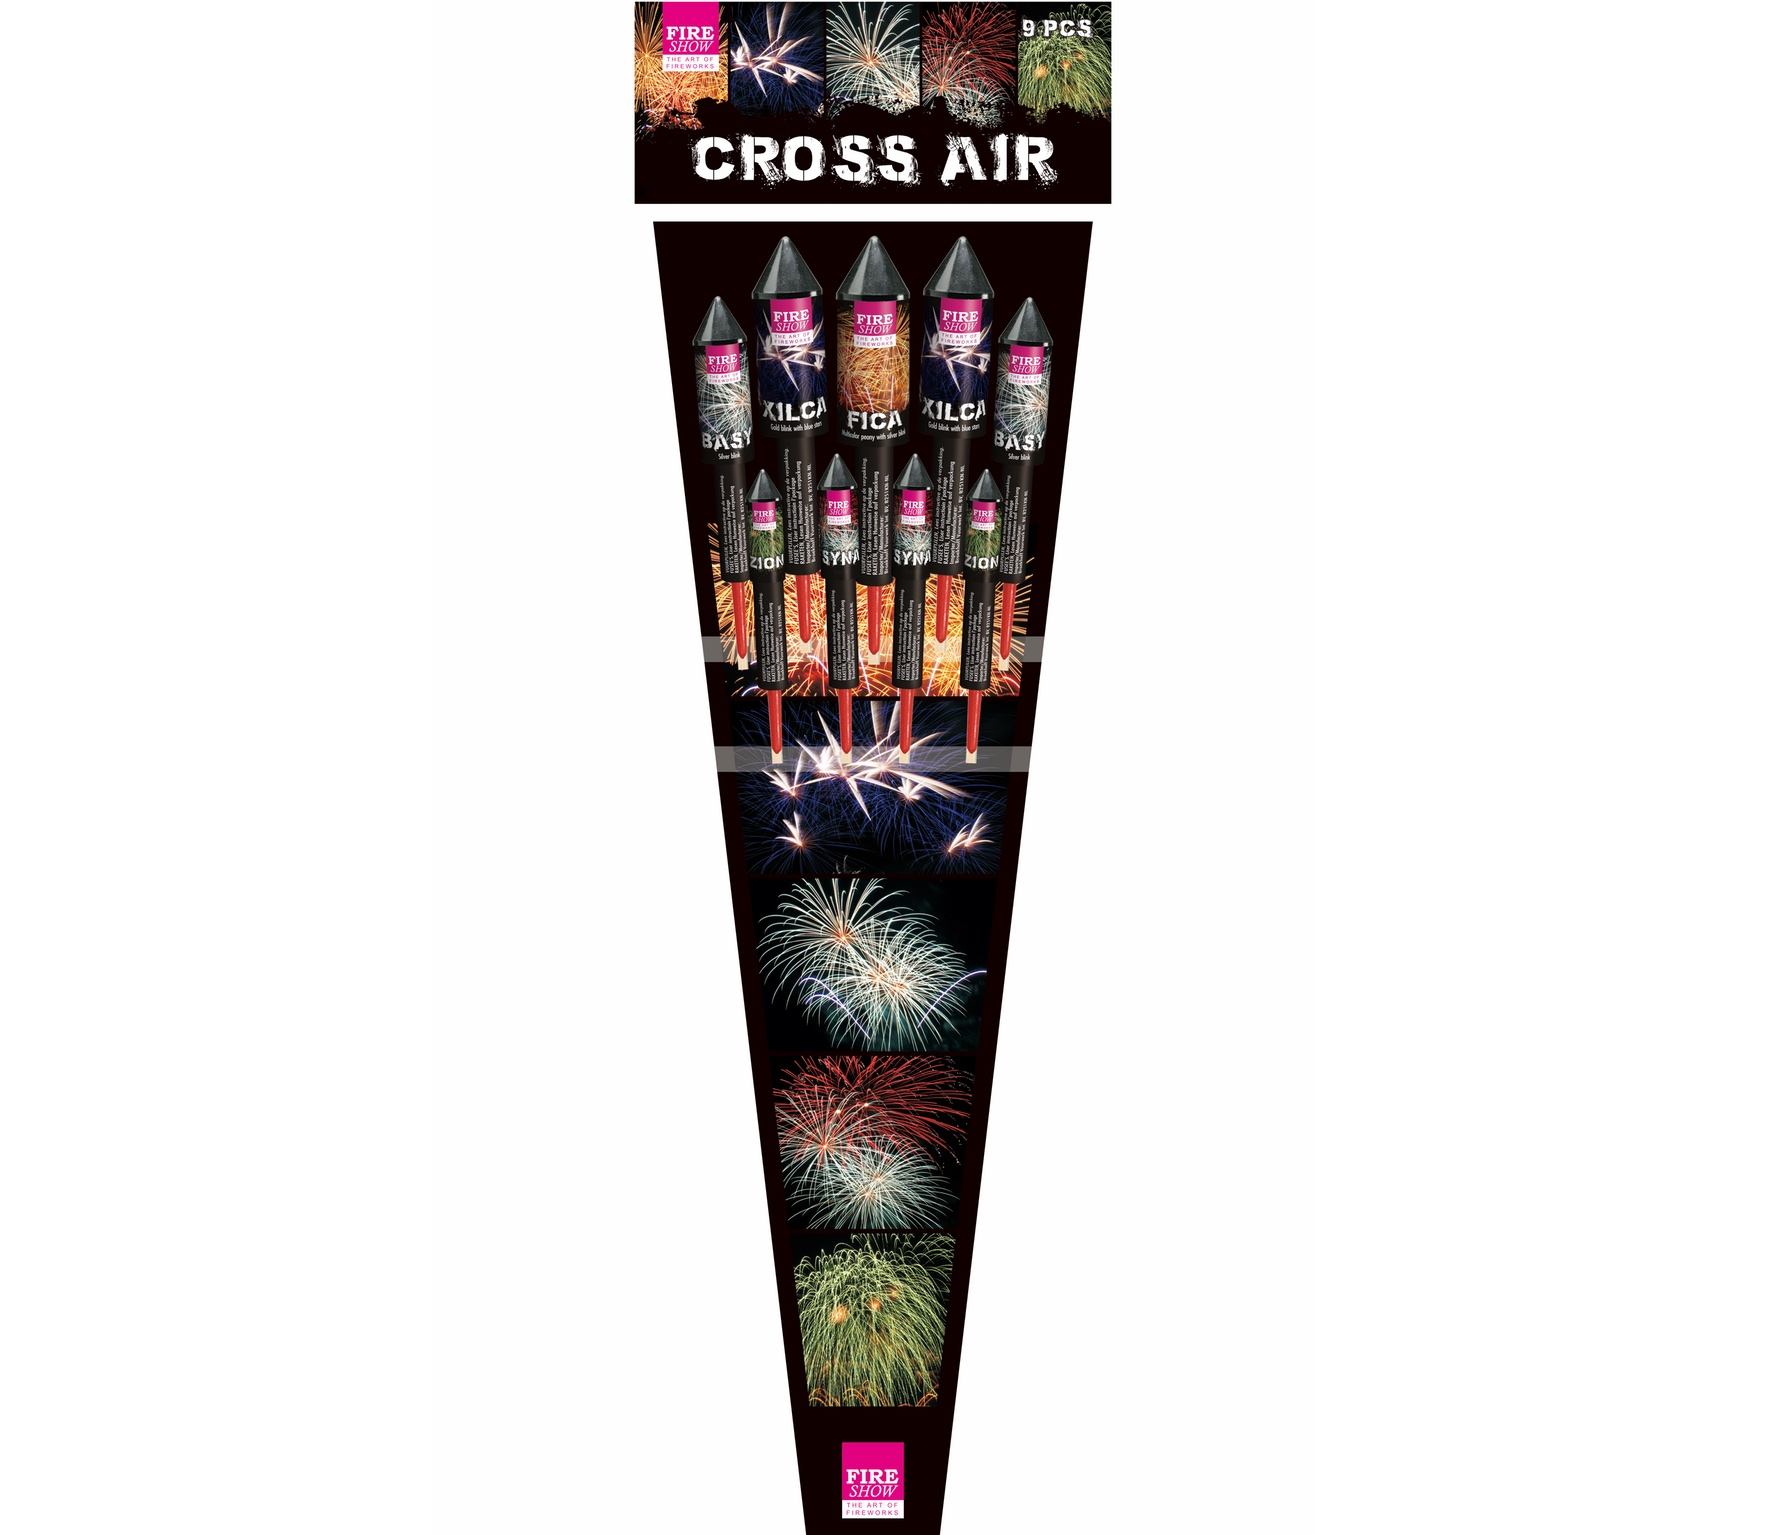 Cross Air 9 stuks